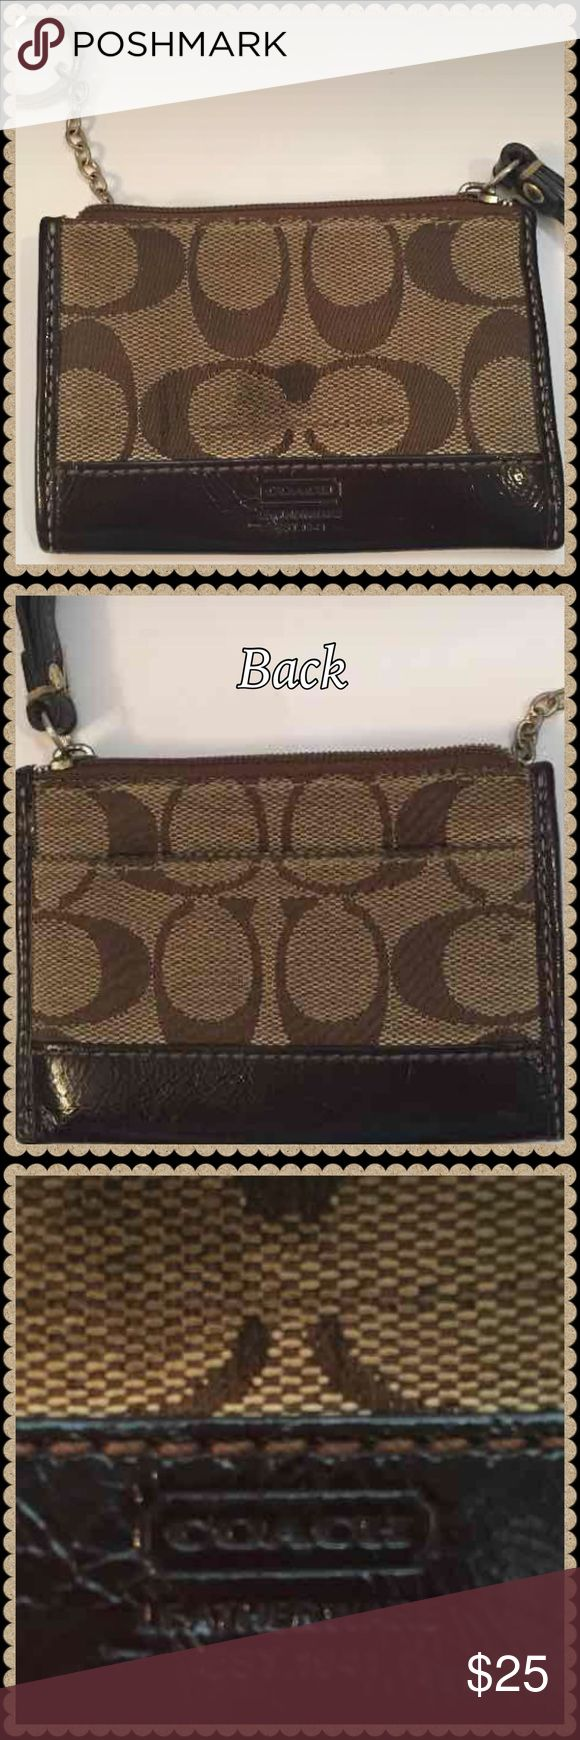 coach key/credit card holder coach key/credit card holder can also store business cards Coach Accessories Key & Card Holders